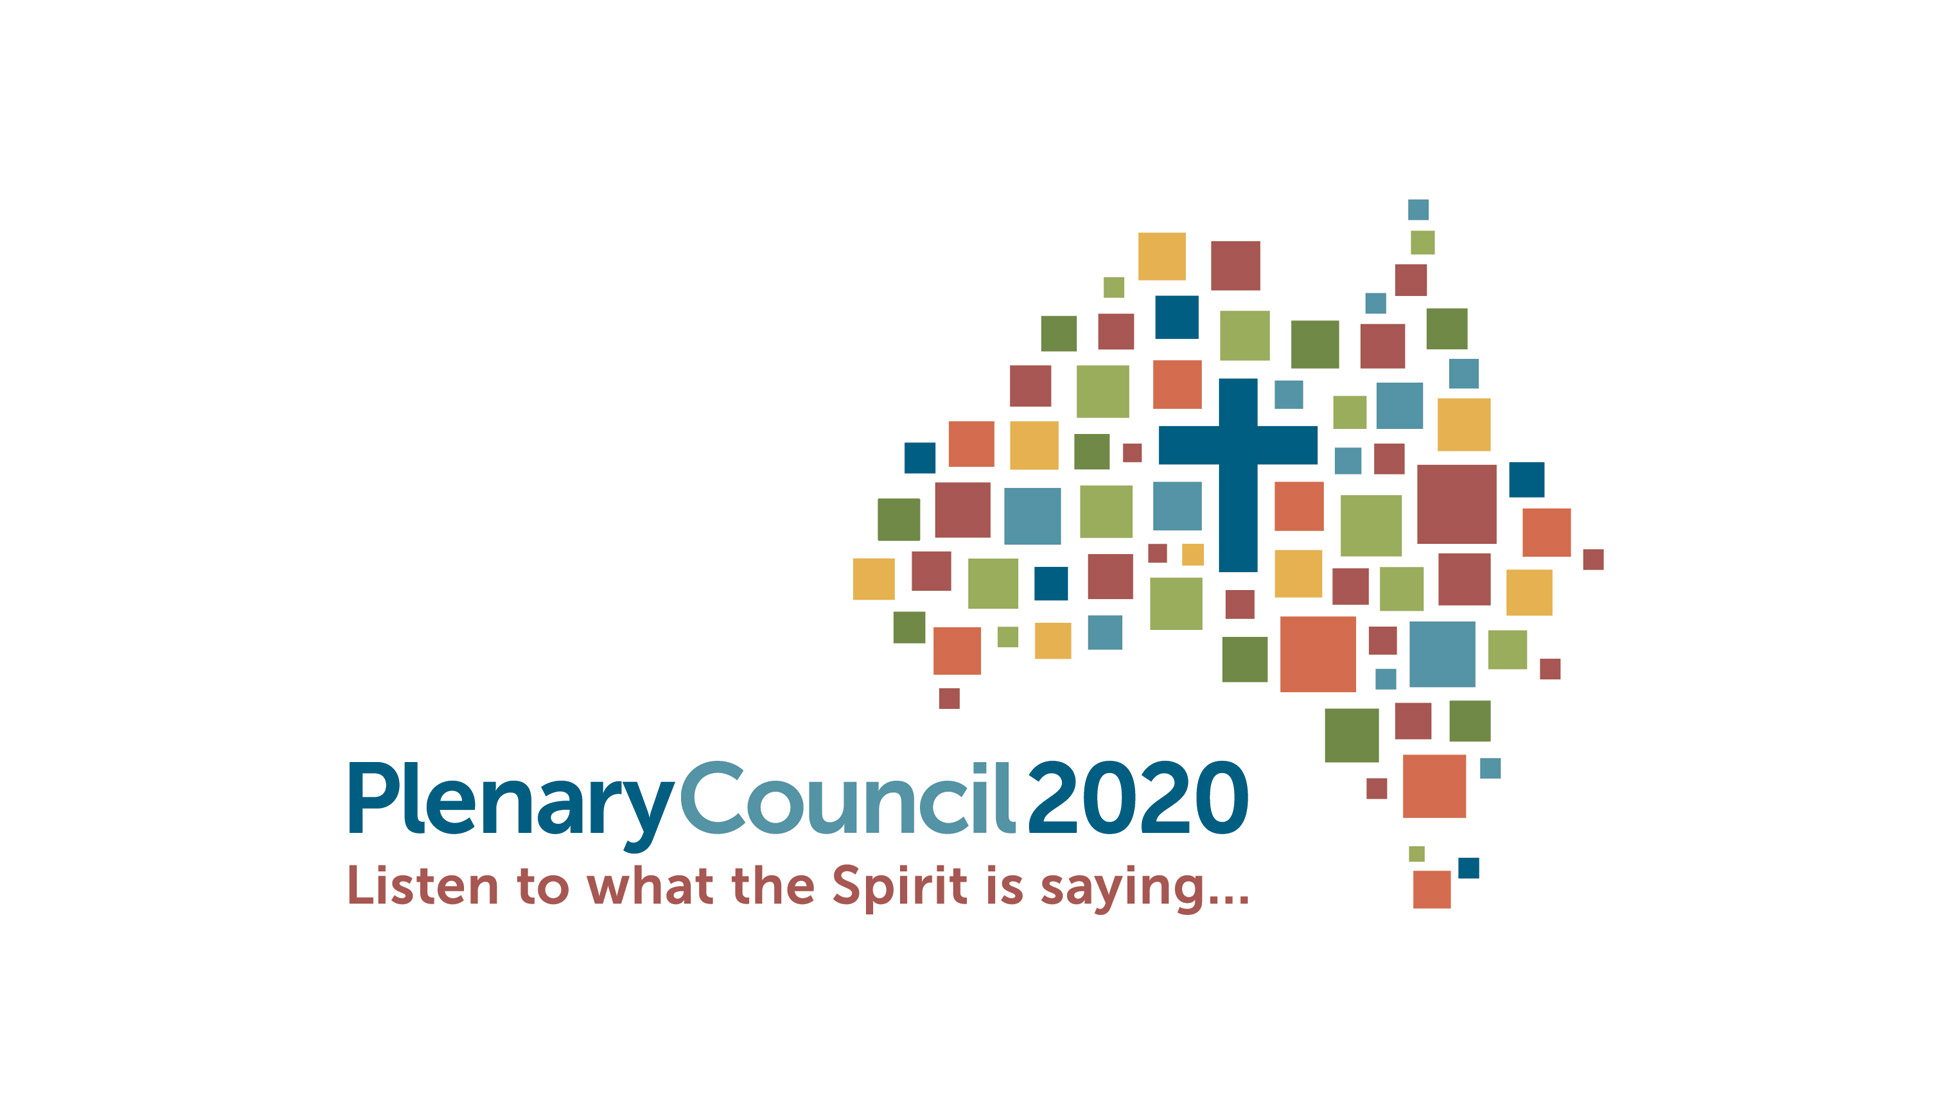 Plenary council logo